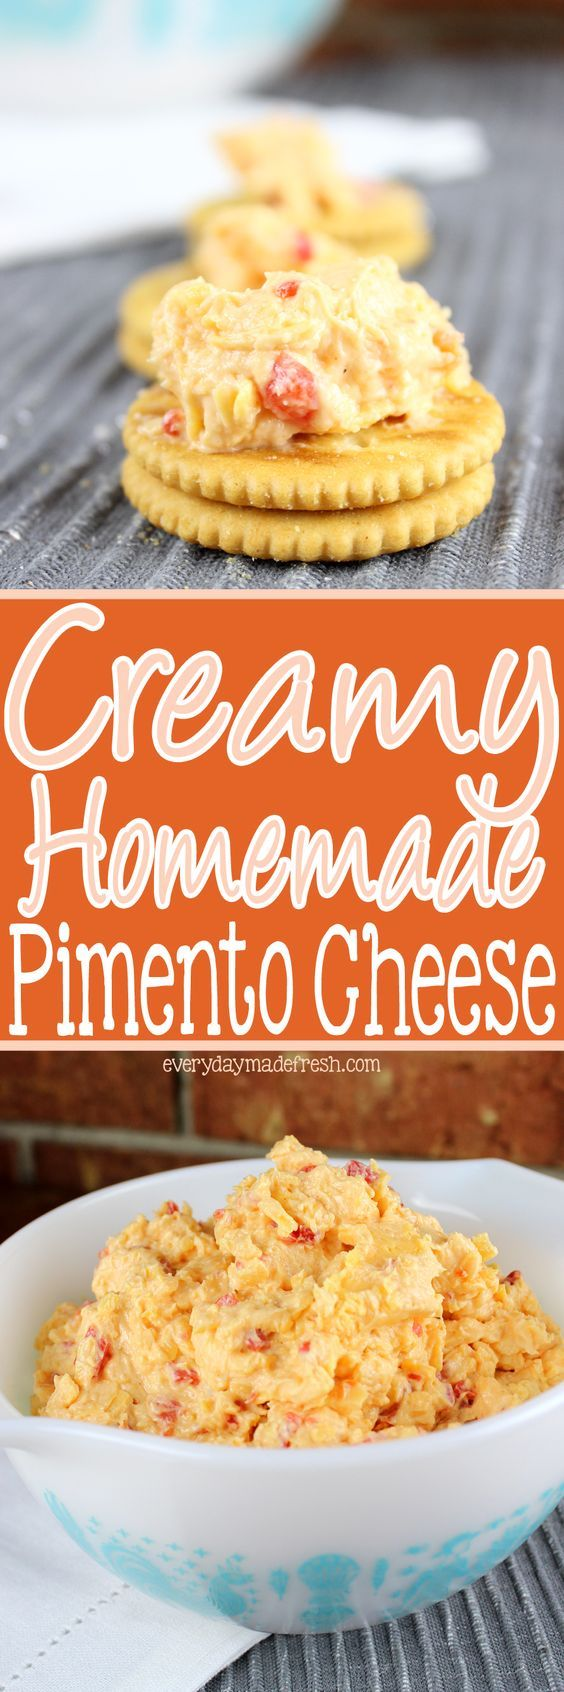 Nothing makes a sandwich better, or the perfect cracker topping, than my recipe for Creamy Homemade Pimento Cheese! | EverydayMadeFresh.com http://www.everydaymadefresh.com/creamy-homemade-pimento-cheese/